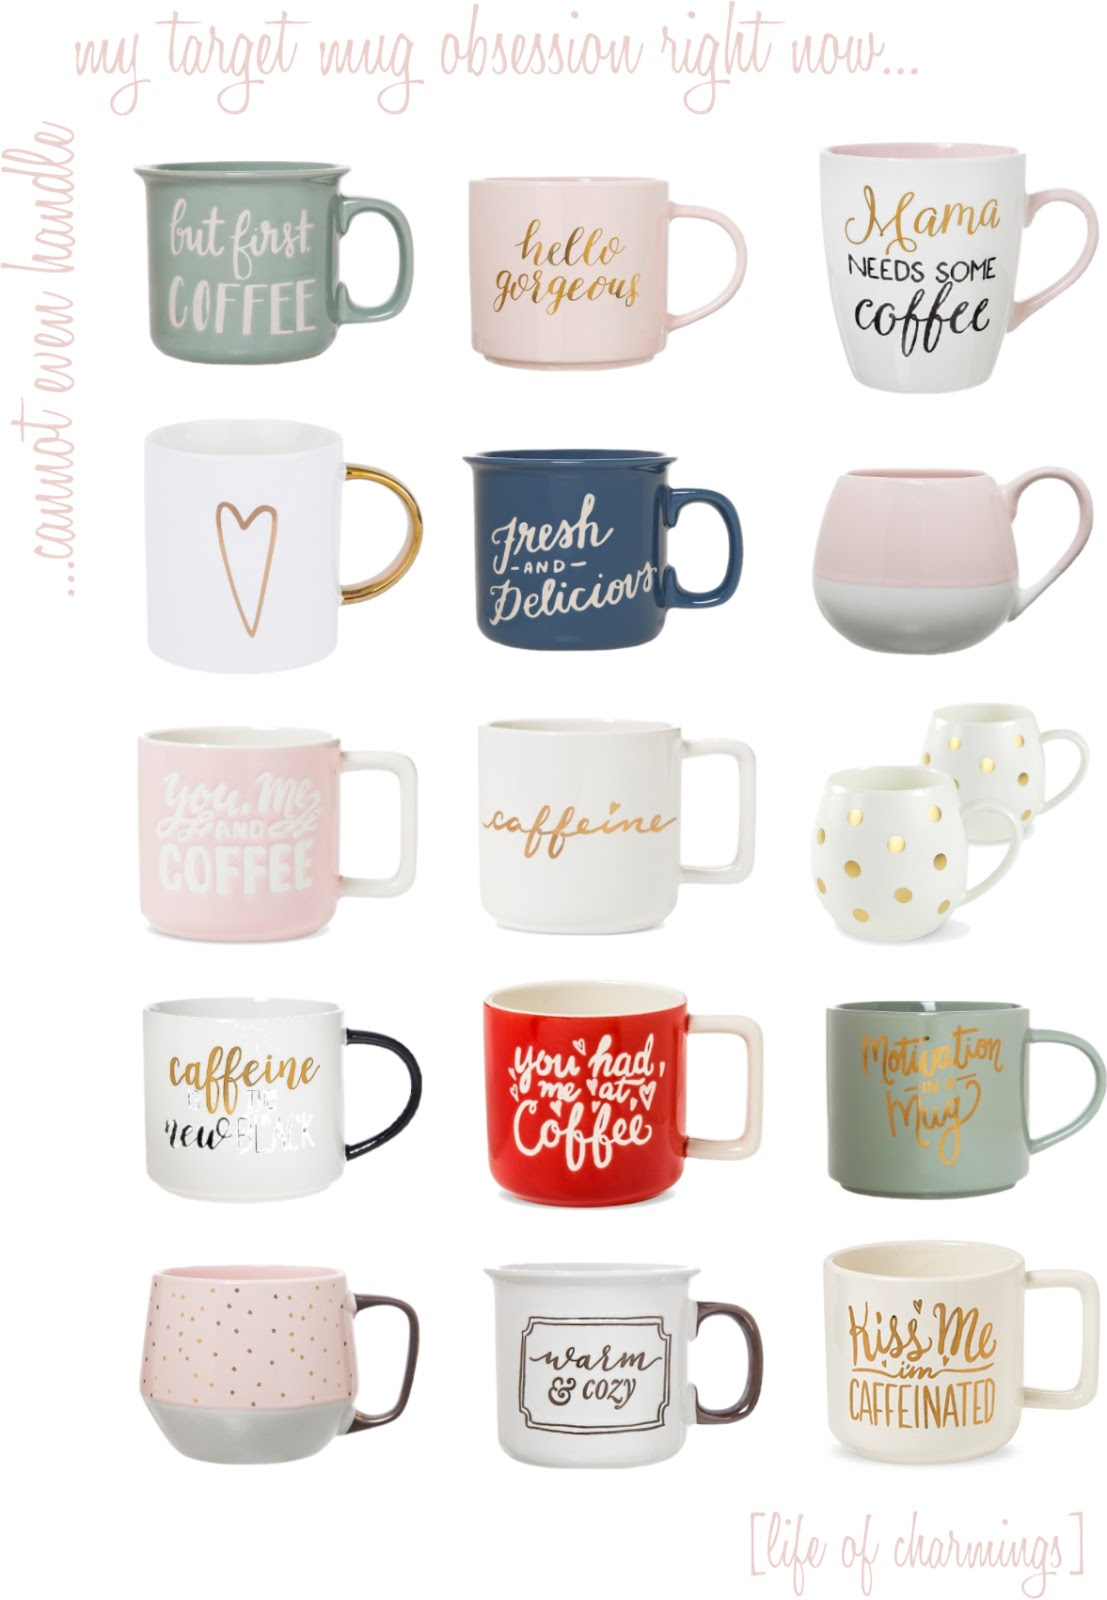 obsessed: are you serious with these mugs right now because i cannot eeeven handle!